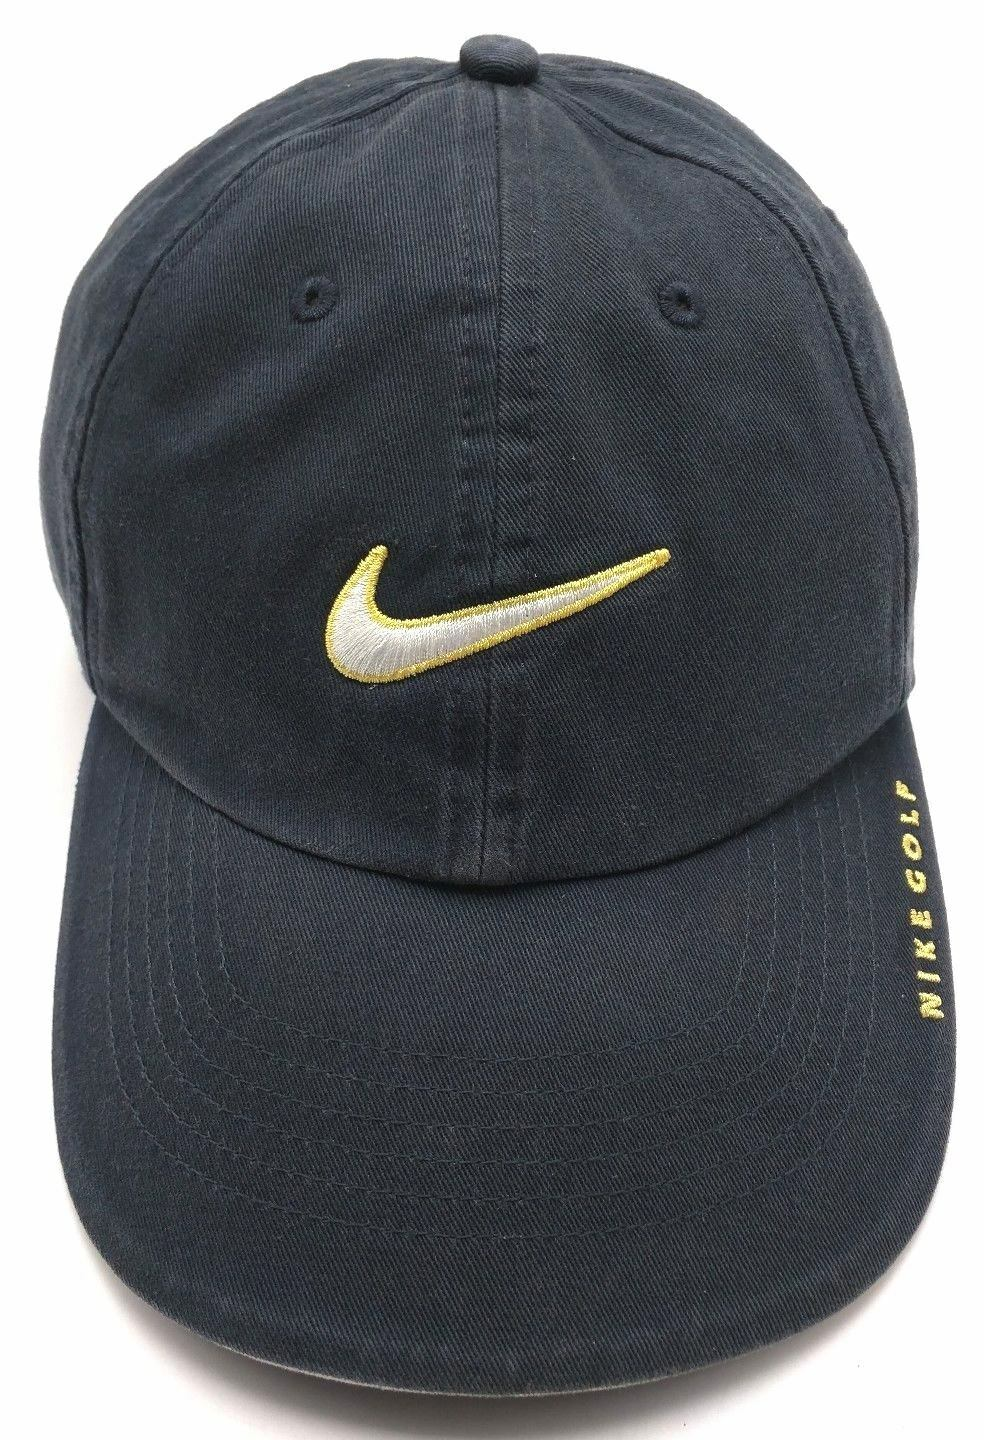 NIKE NIKE NIKE GOLF blue adjustable cap / hat - 100% cotton 26b354